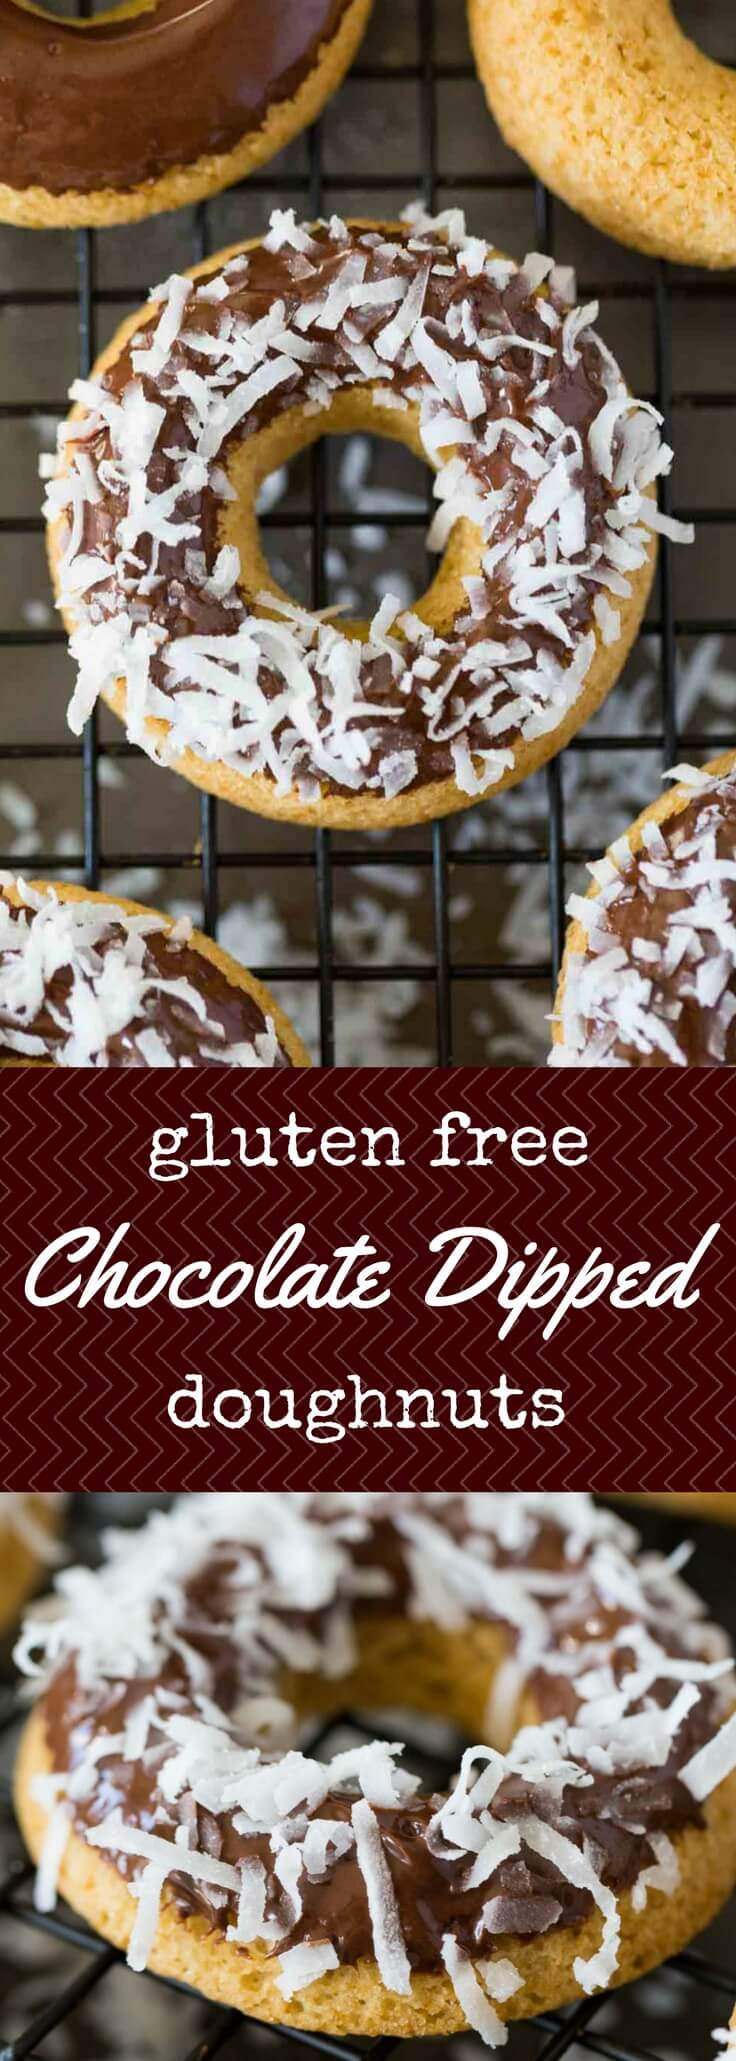 Soft and pillowy gluten free doughnuts are oven baked and dipped in a luscious chocolate glaze.  Enjoy their chocolate-covered glory, or take it to the next level with your favorite toppings (like coconut).